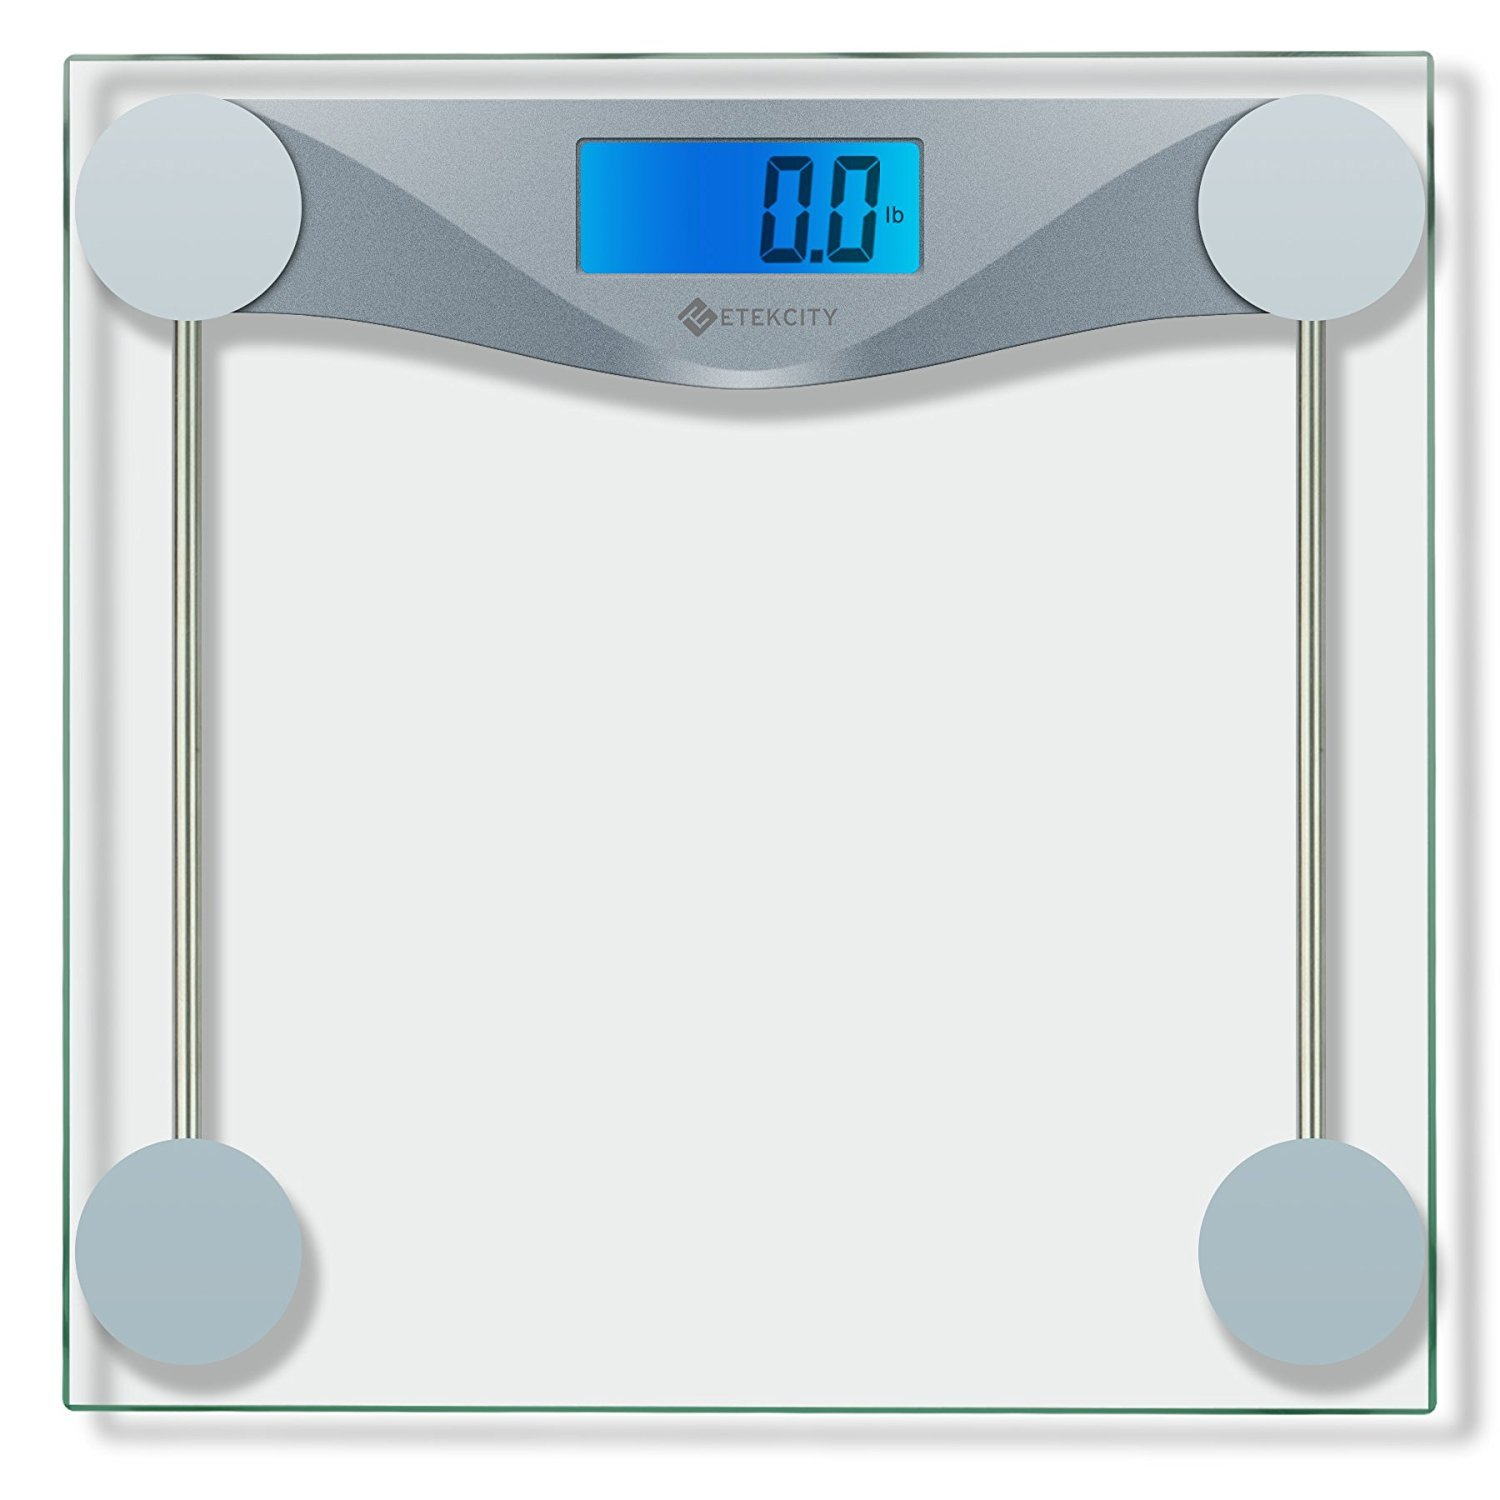 Etekcity Digital Bathroom Body Weight Scale, High Precision Smart Step-on technology, Tempered Glass, Backlit Display, Body Tape Measure(Batteries Included)